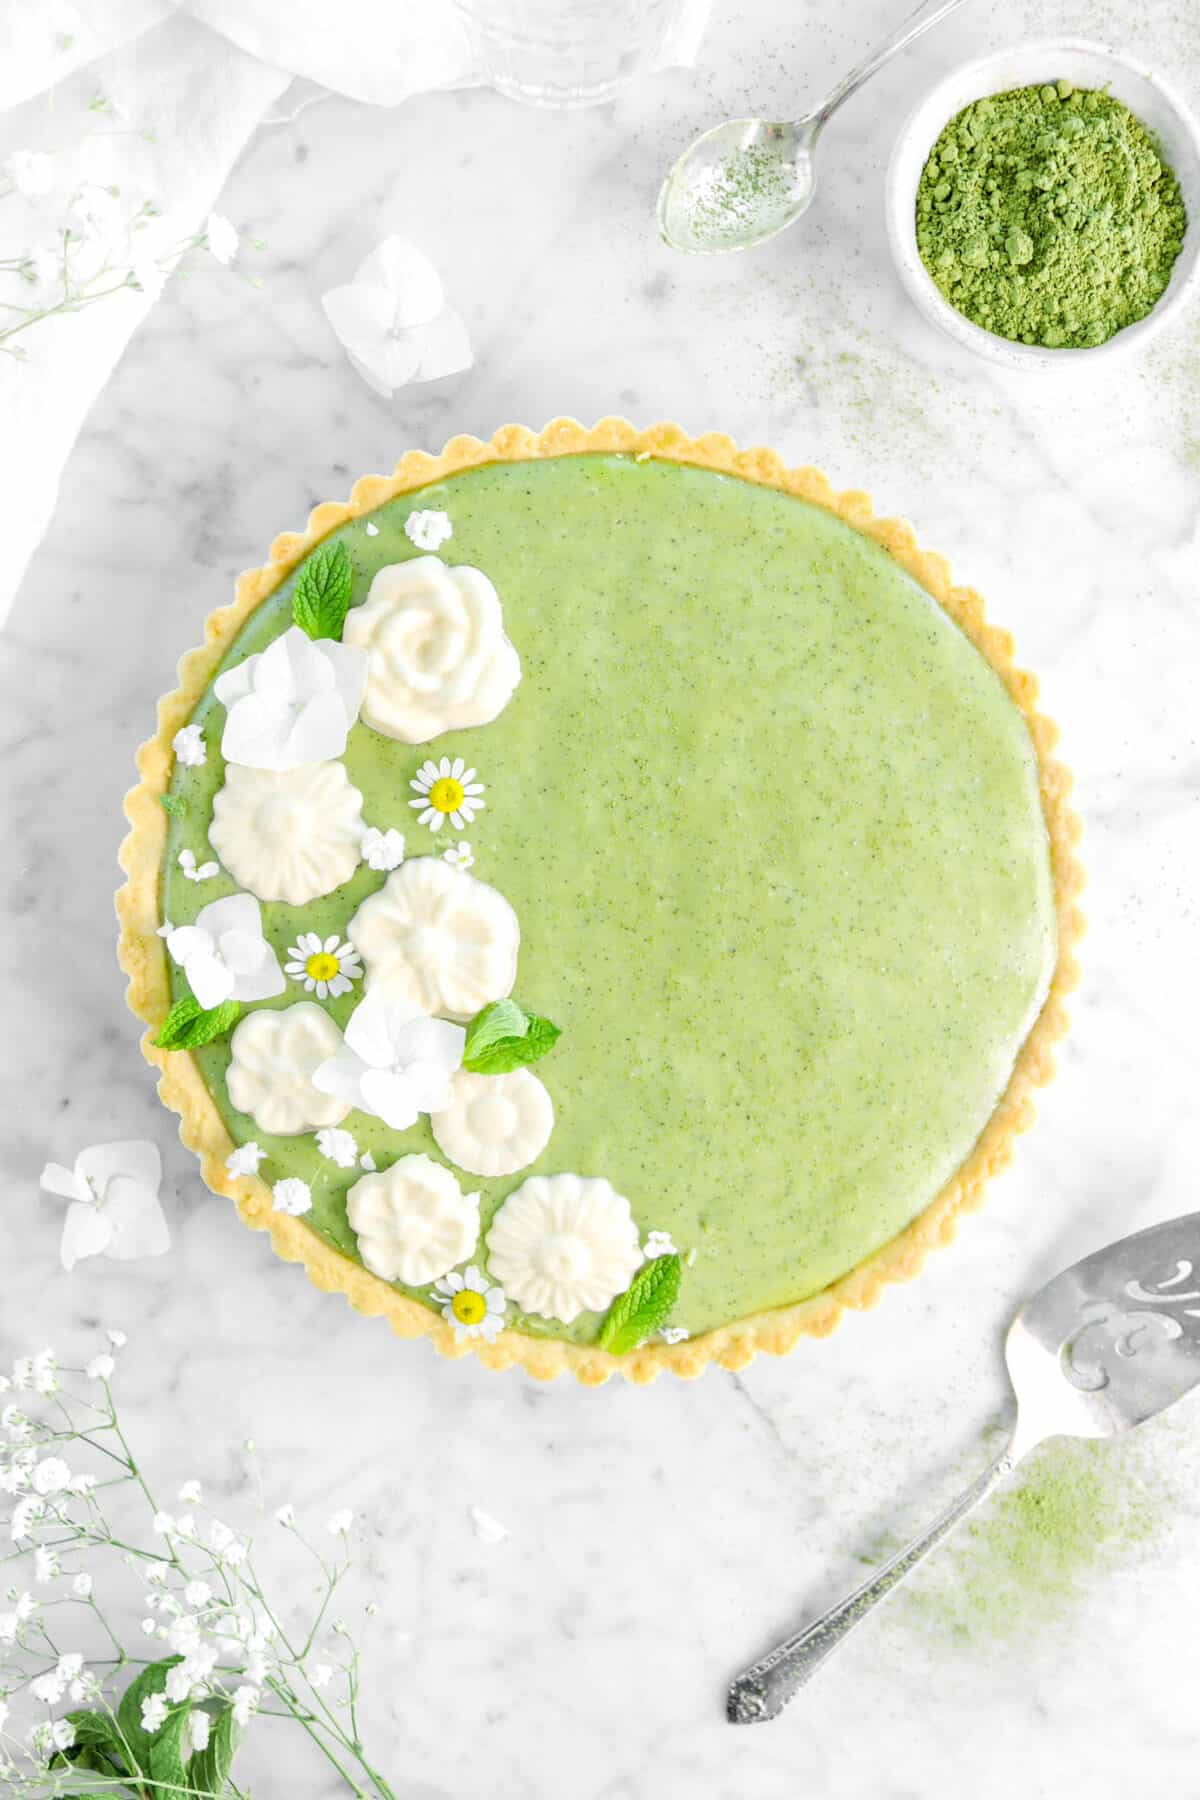 overhead shot of white chocolate matcha tart with flowers, mint leaves, cake knfe, a spoon, bowl of matcha, and a white napkin